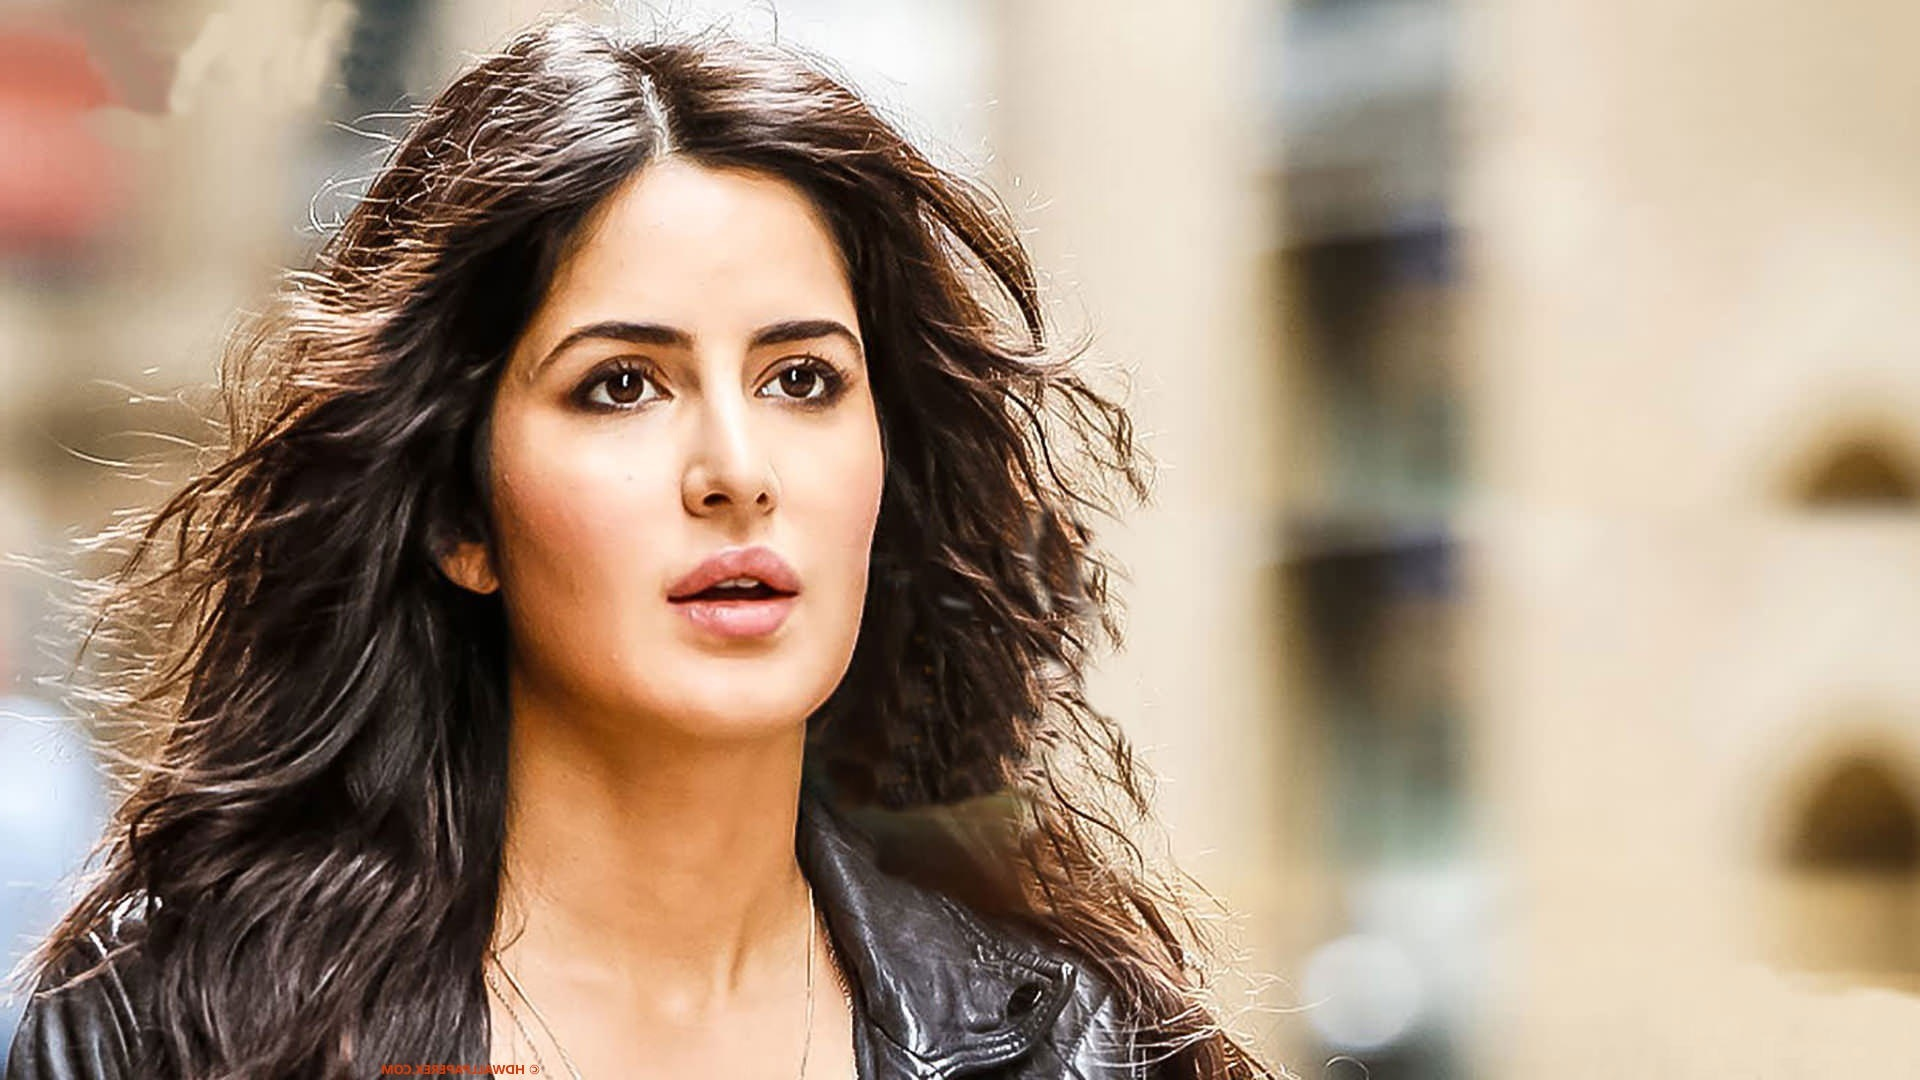 Bollywood Actress Katrina Kaif In Phantom Movie Hd Wallpaper Hd